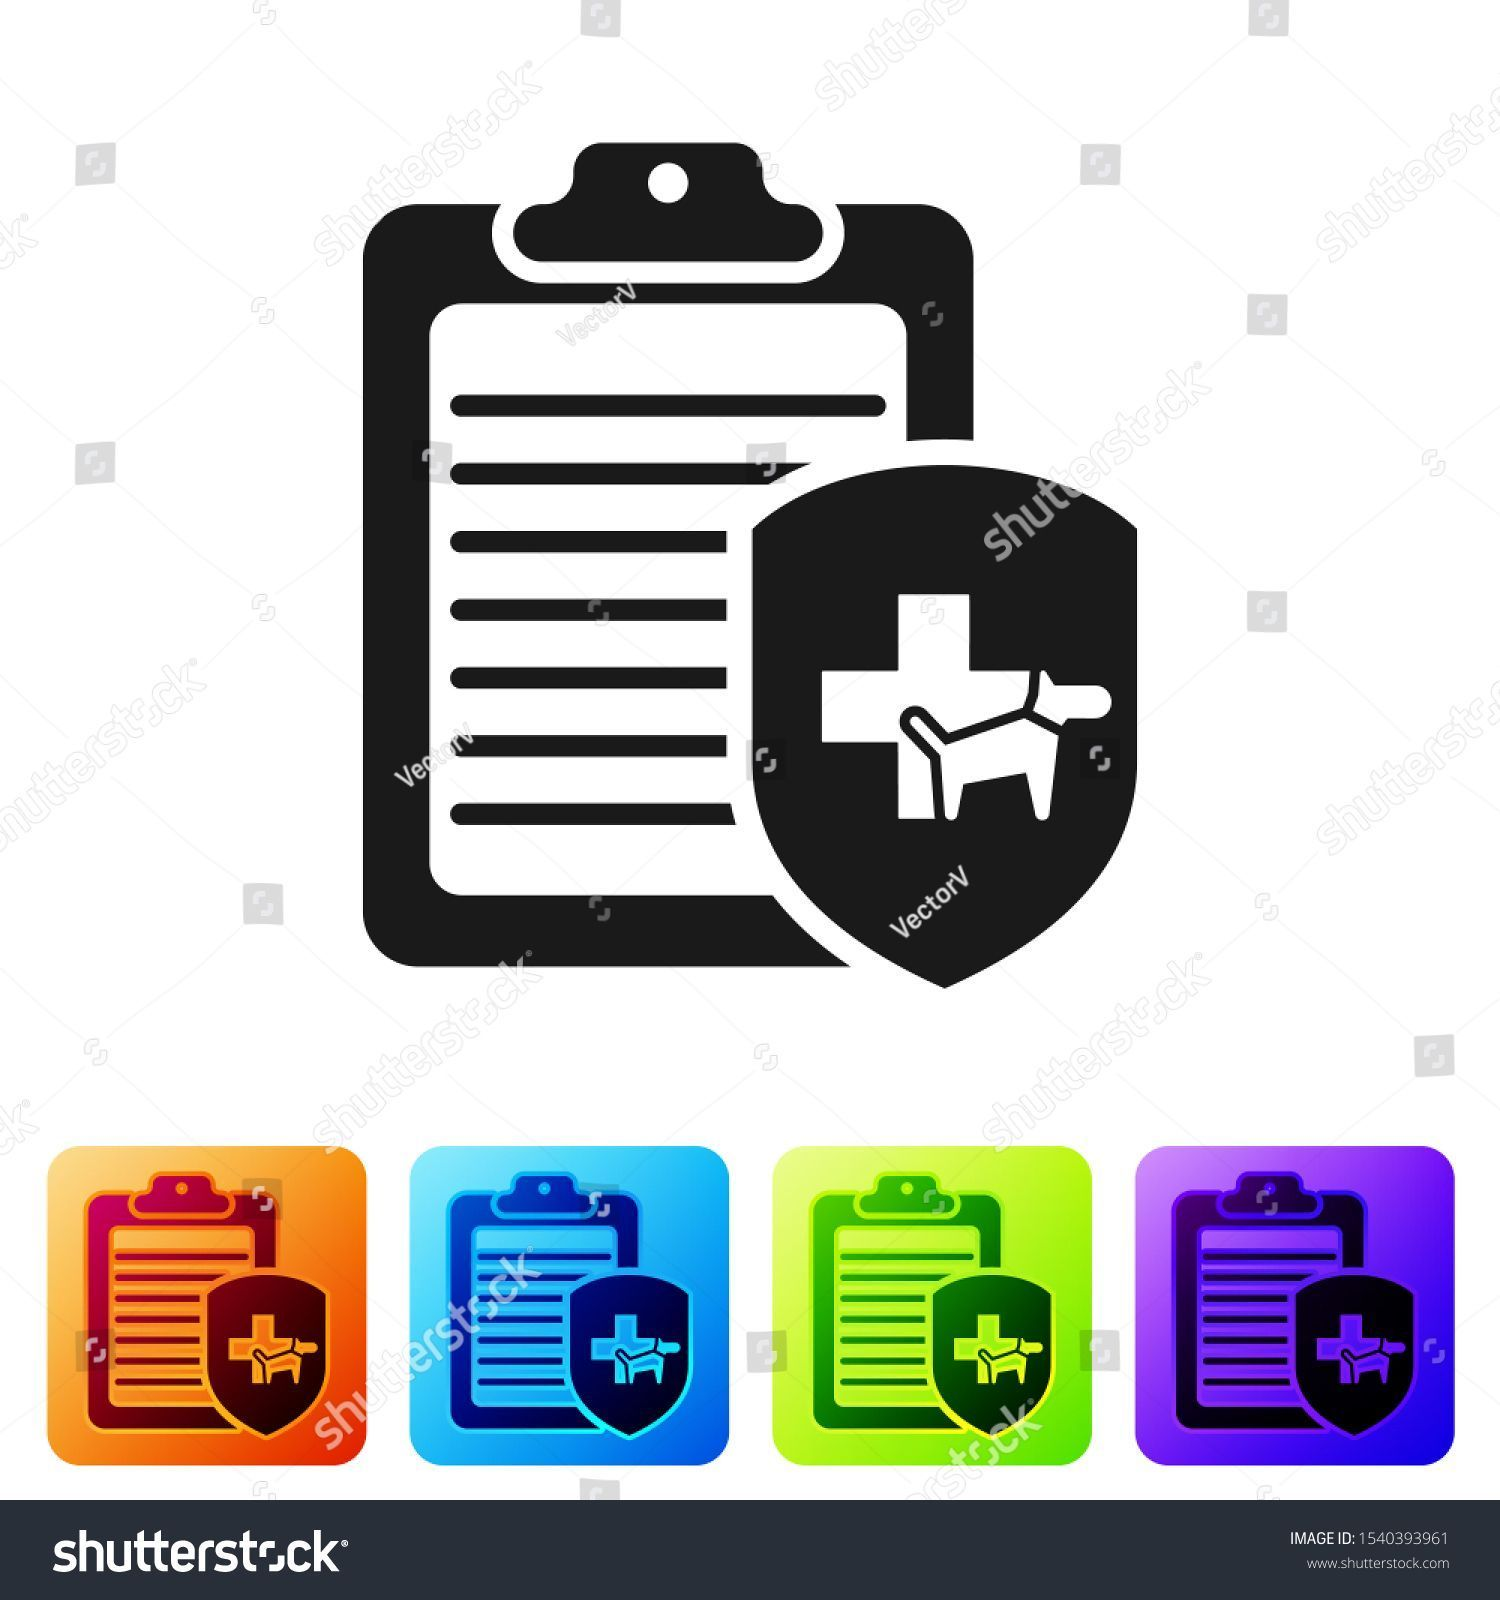 Black Clipboard With Medical Clinical Record Pet Icon Isolated On